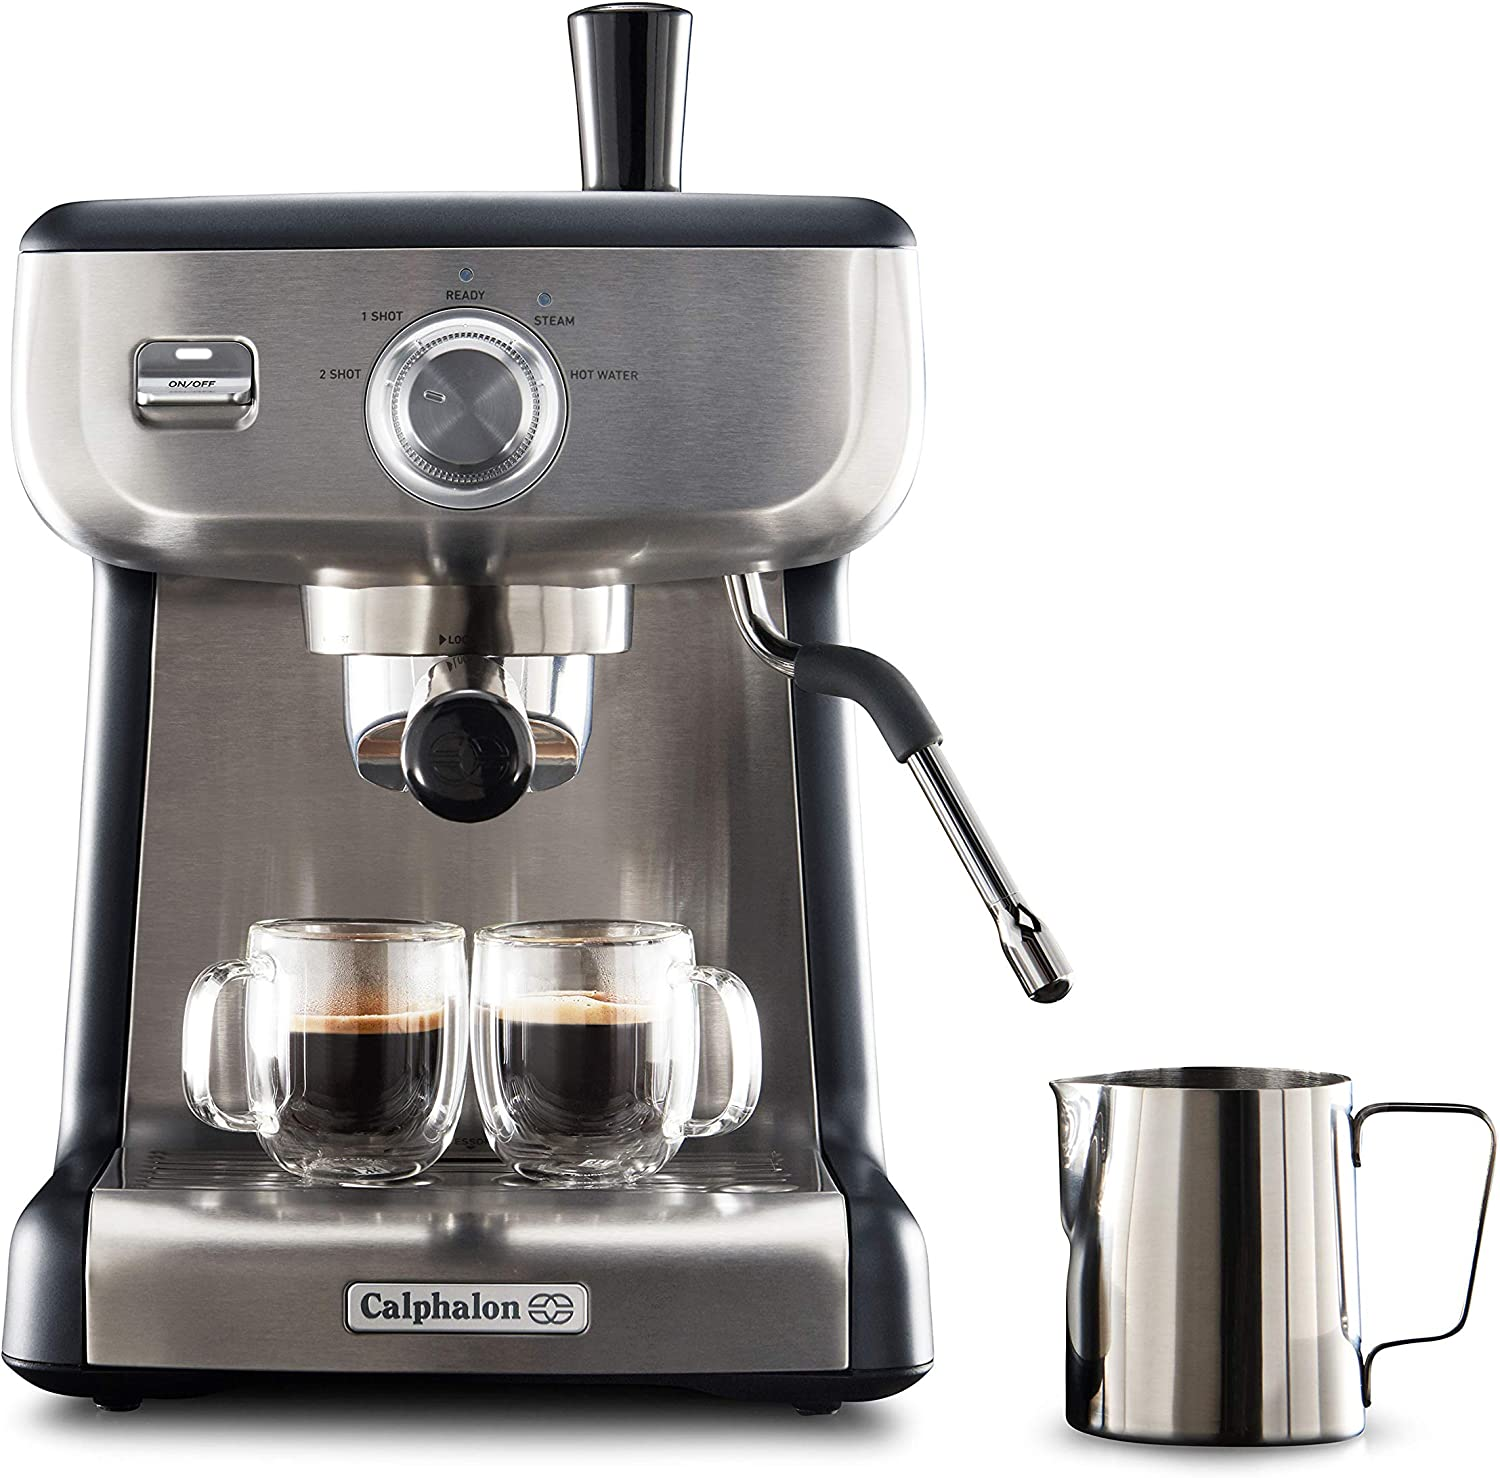 Calphalon BVCLECMP1 Temp iQ Espresso Machine with Steam Wand, Stainless